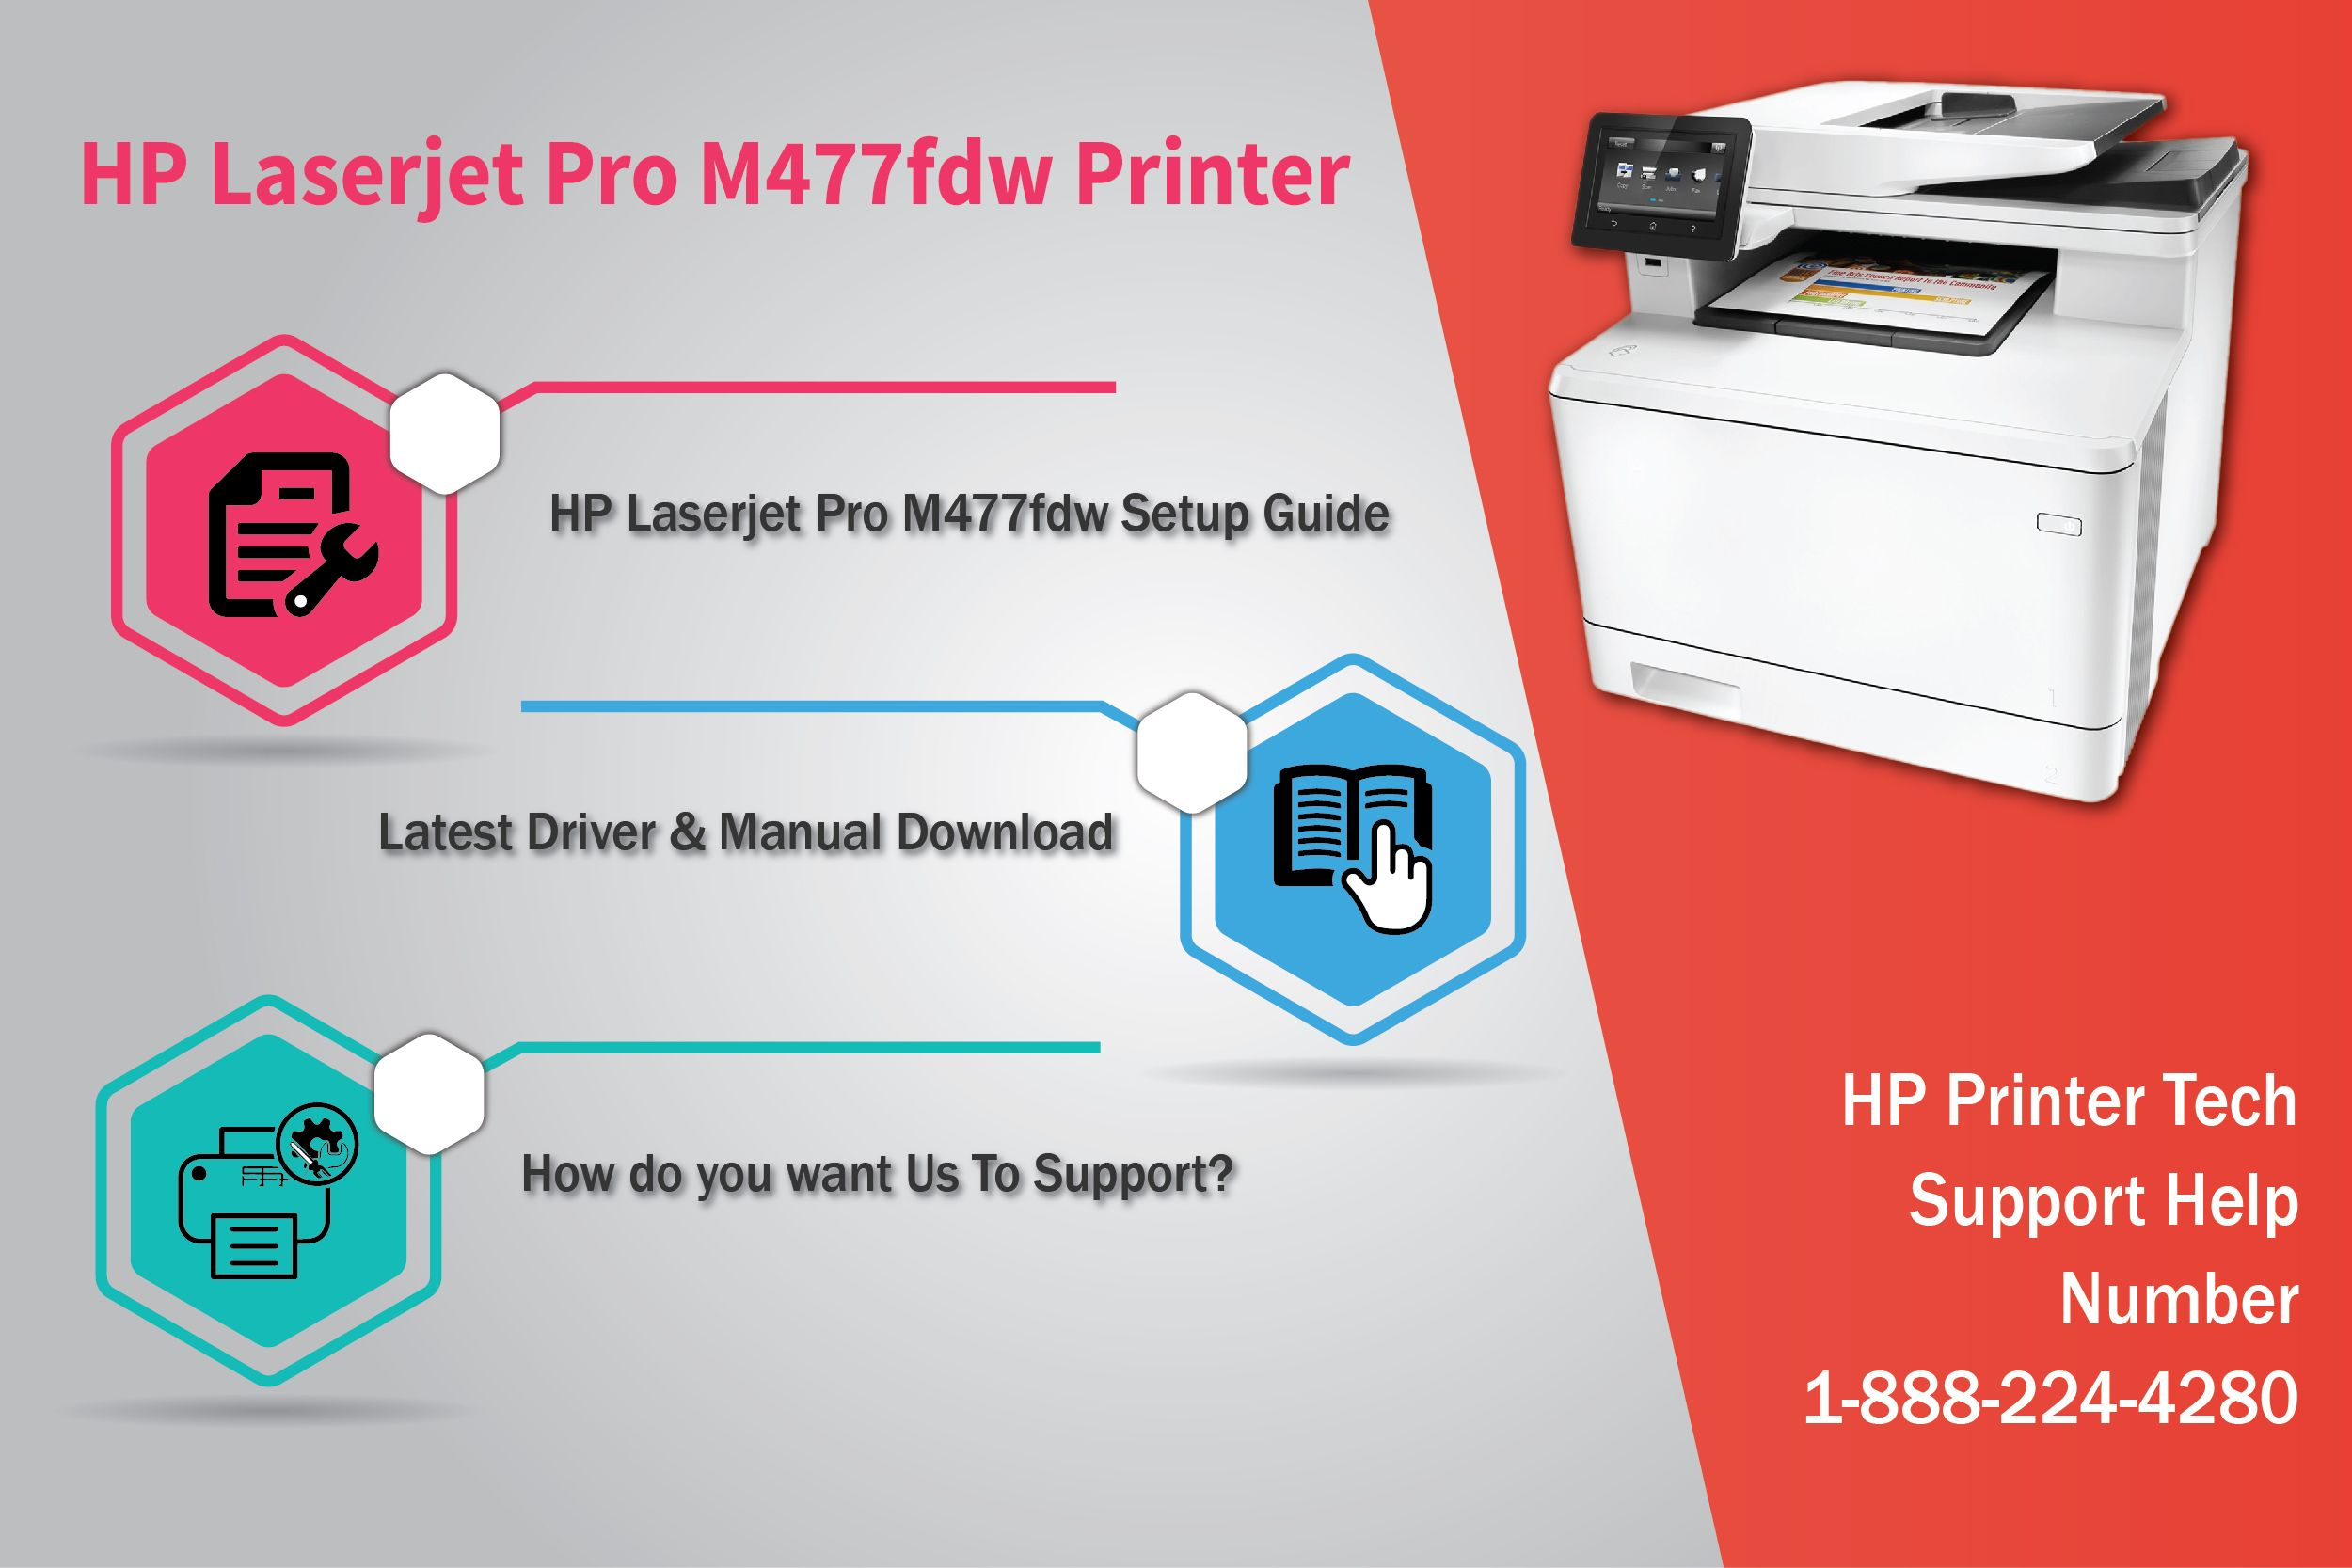 Hp laserjet pro mdw printer driver and manual get support for